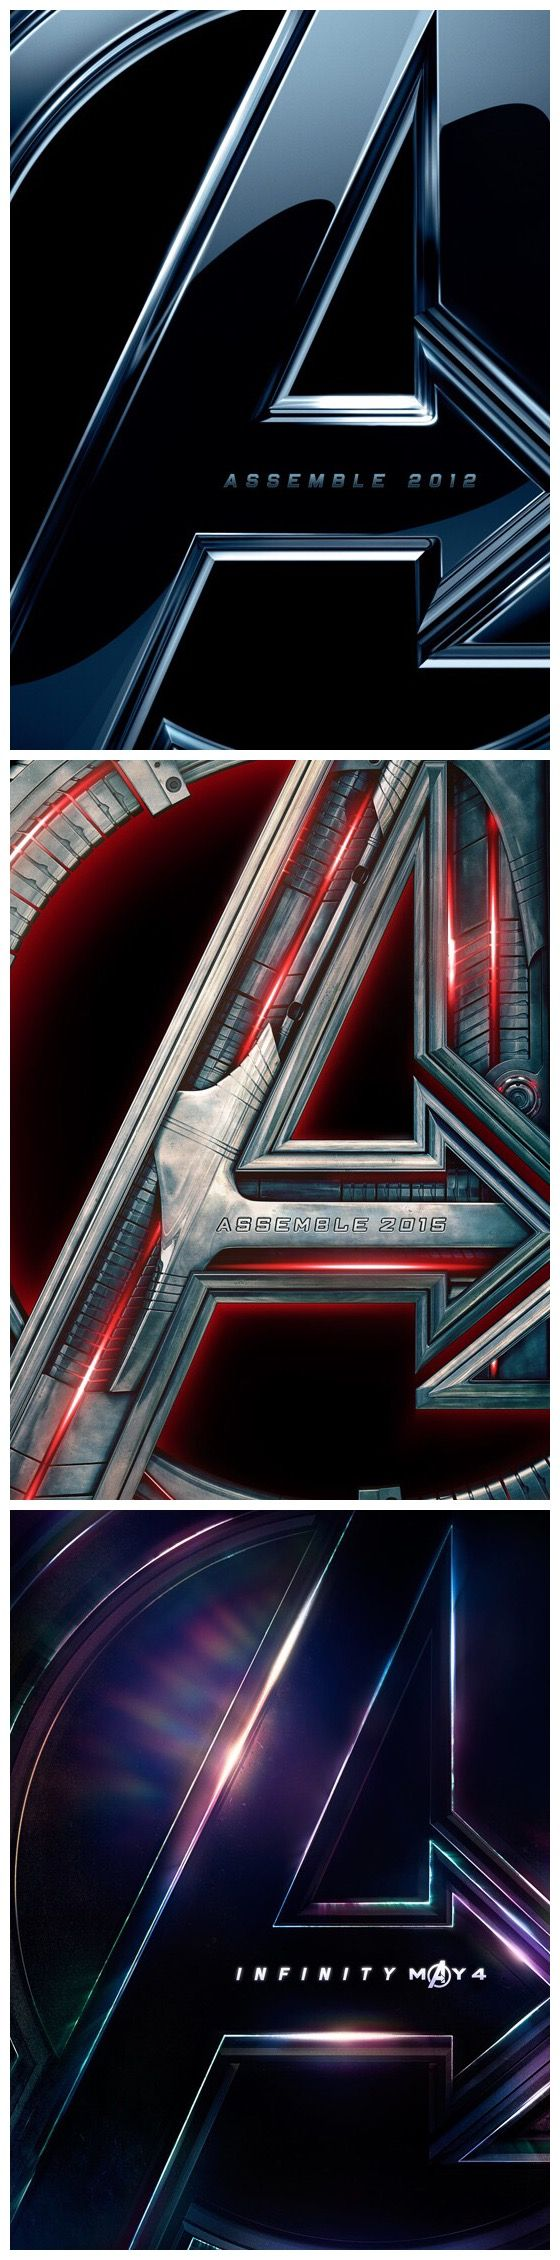 Avengers teaser posters through the years